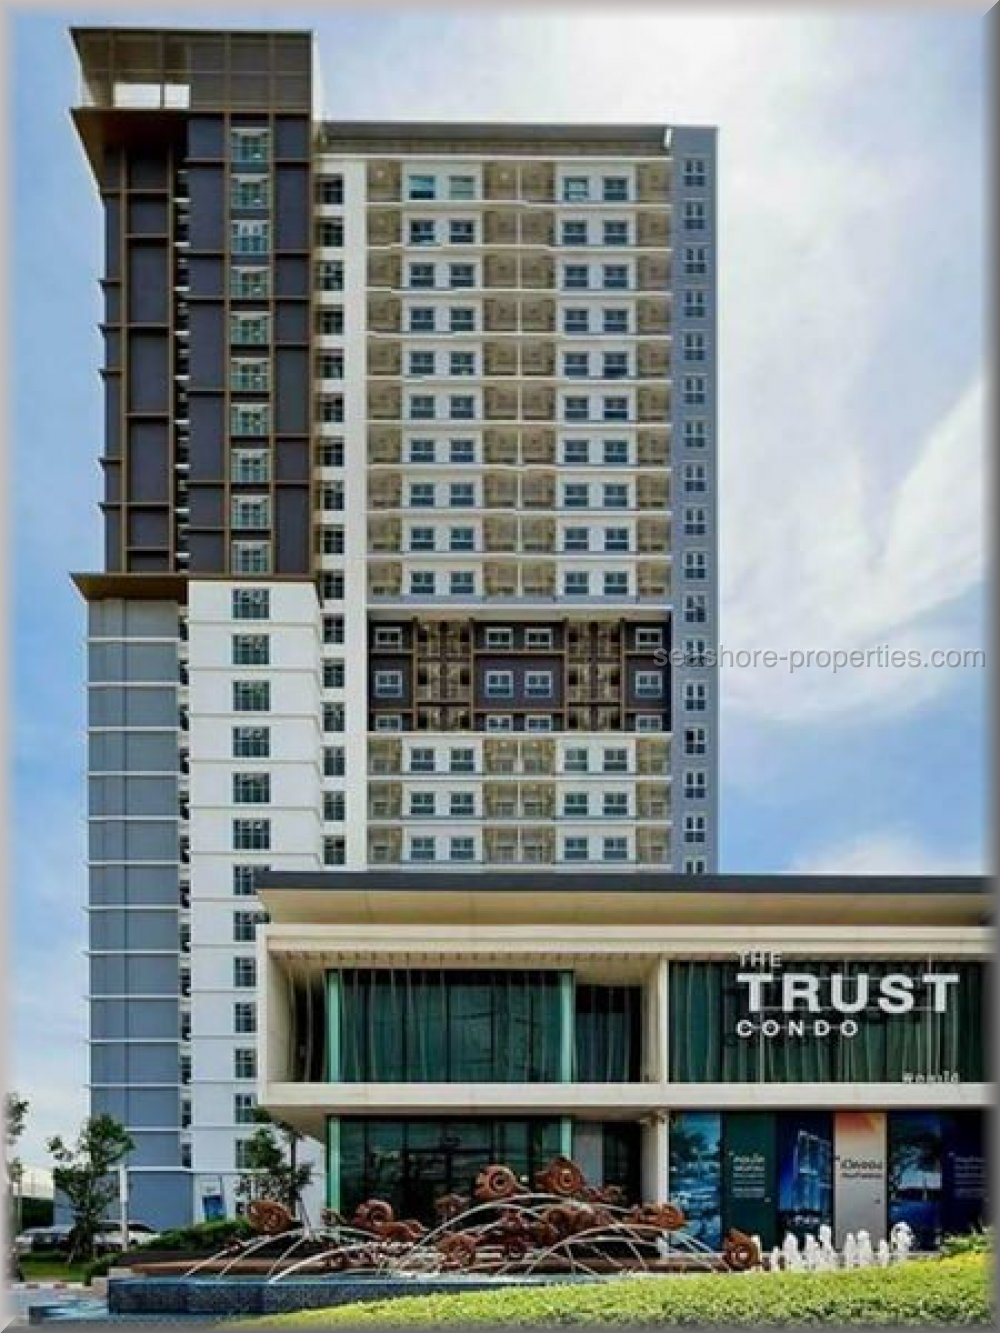 the trust south pattaya  Condominiums to rent in South Pattaya Pattaya